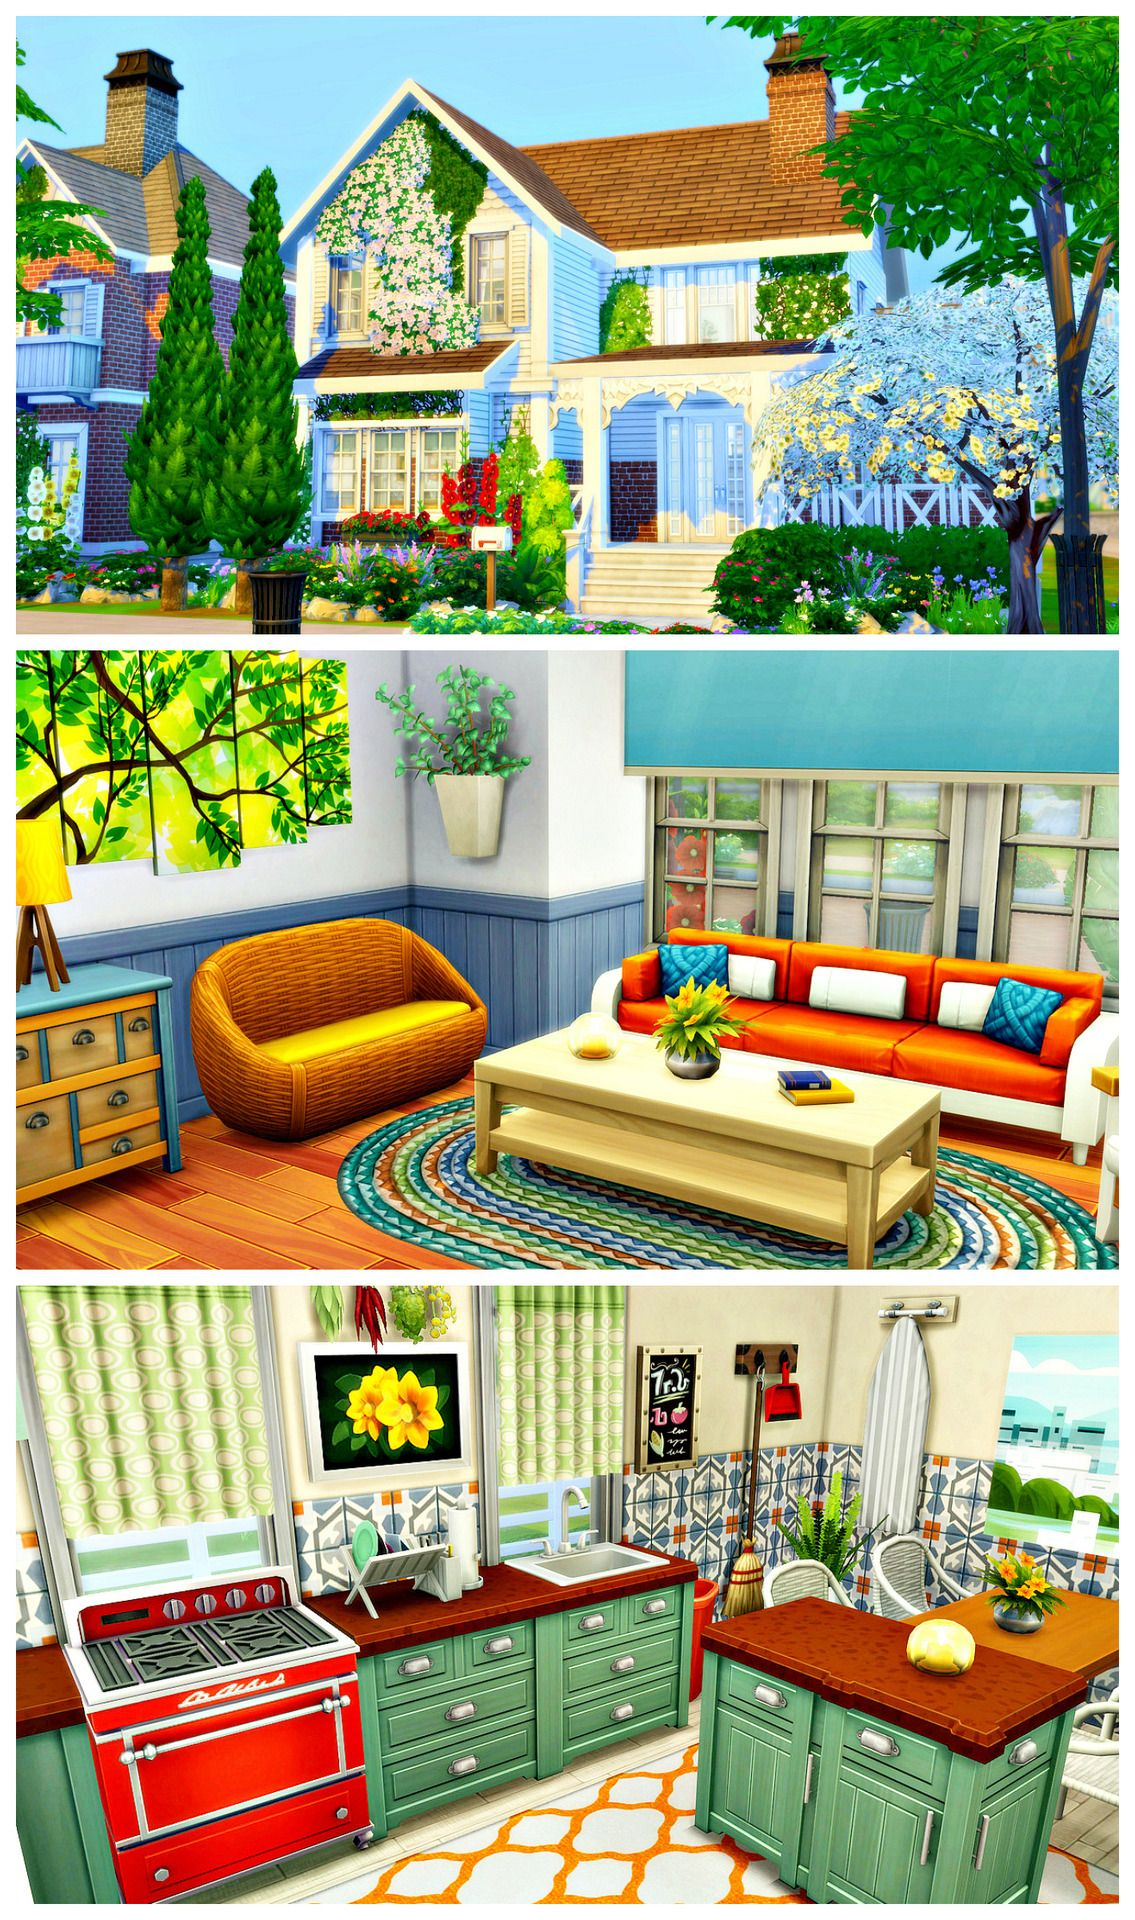 Riverside Completely Cc Free 2 Bedrooms 1 Bathroom 63 027 20 X 15 Lot Bb Moveobjects On Will Sims 4 House Design Sims House Plans Sims House